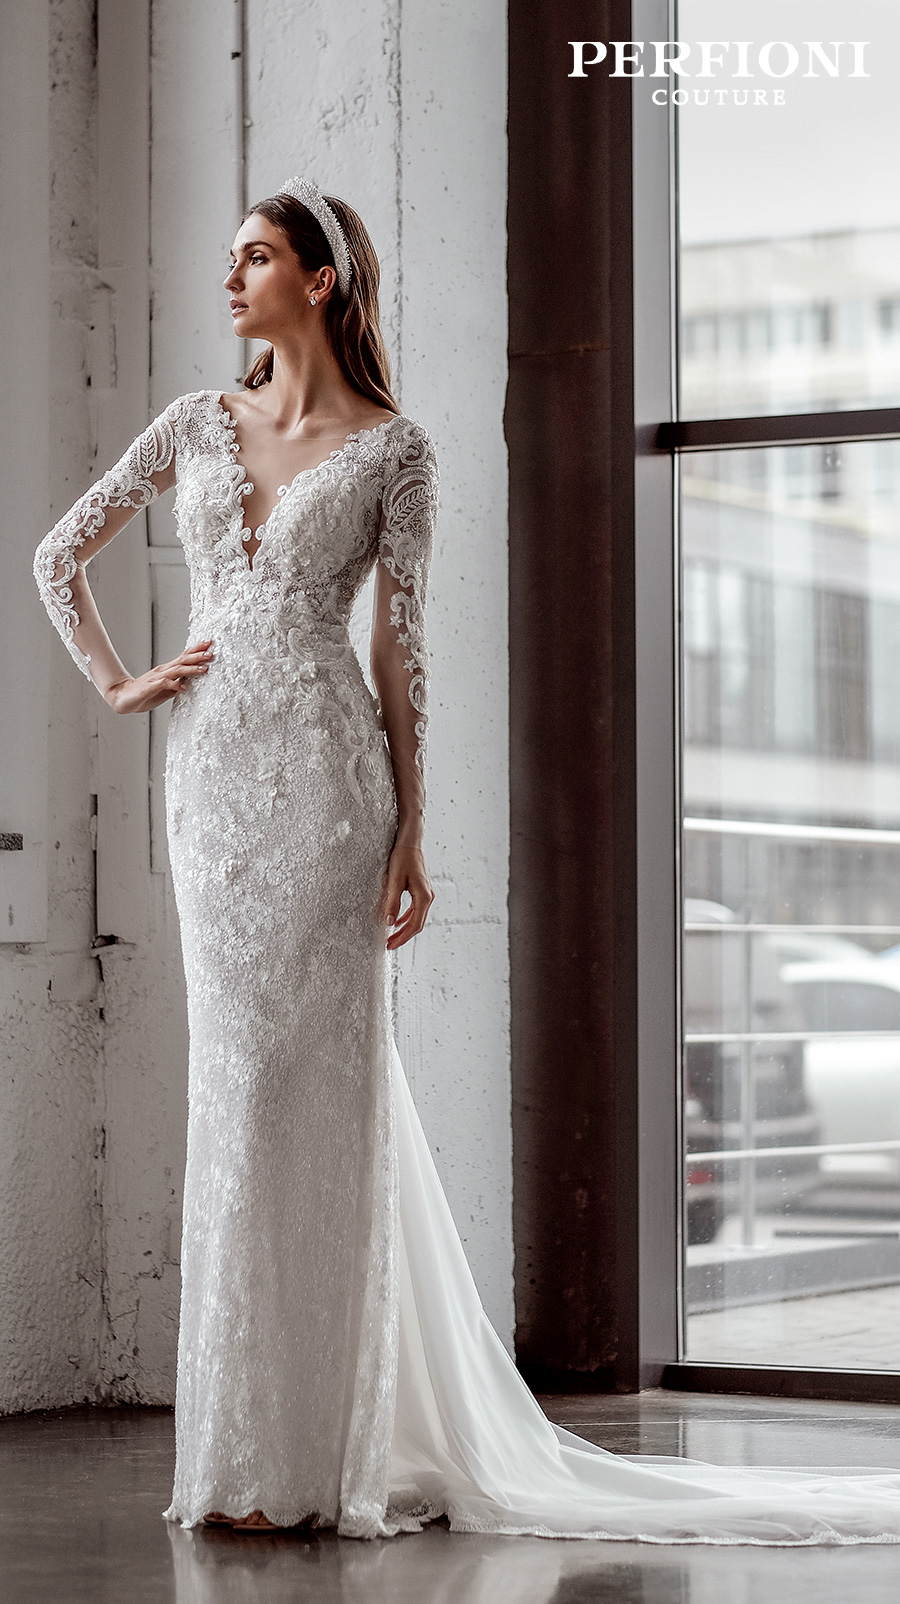 perfioni 2020 love season bridal long sleeves v neck full embellishment elegant sheath wedding dress covered lace back sweep train (sarah) mv